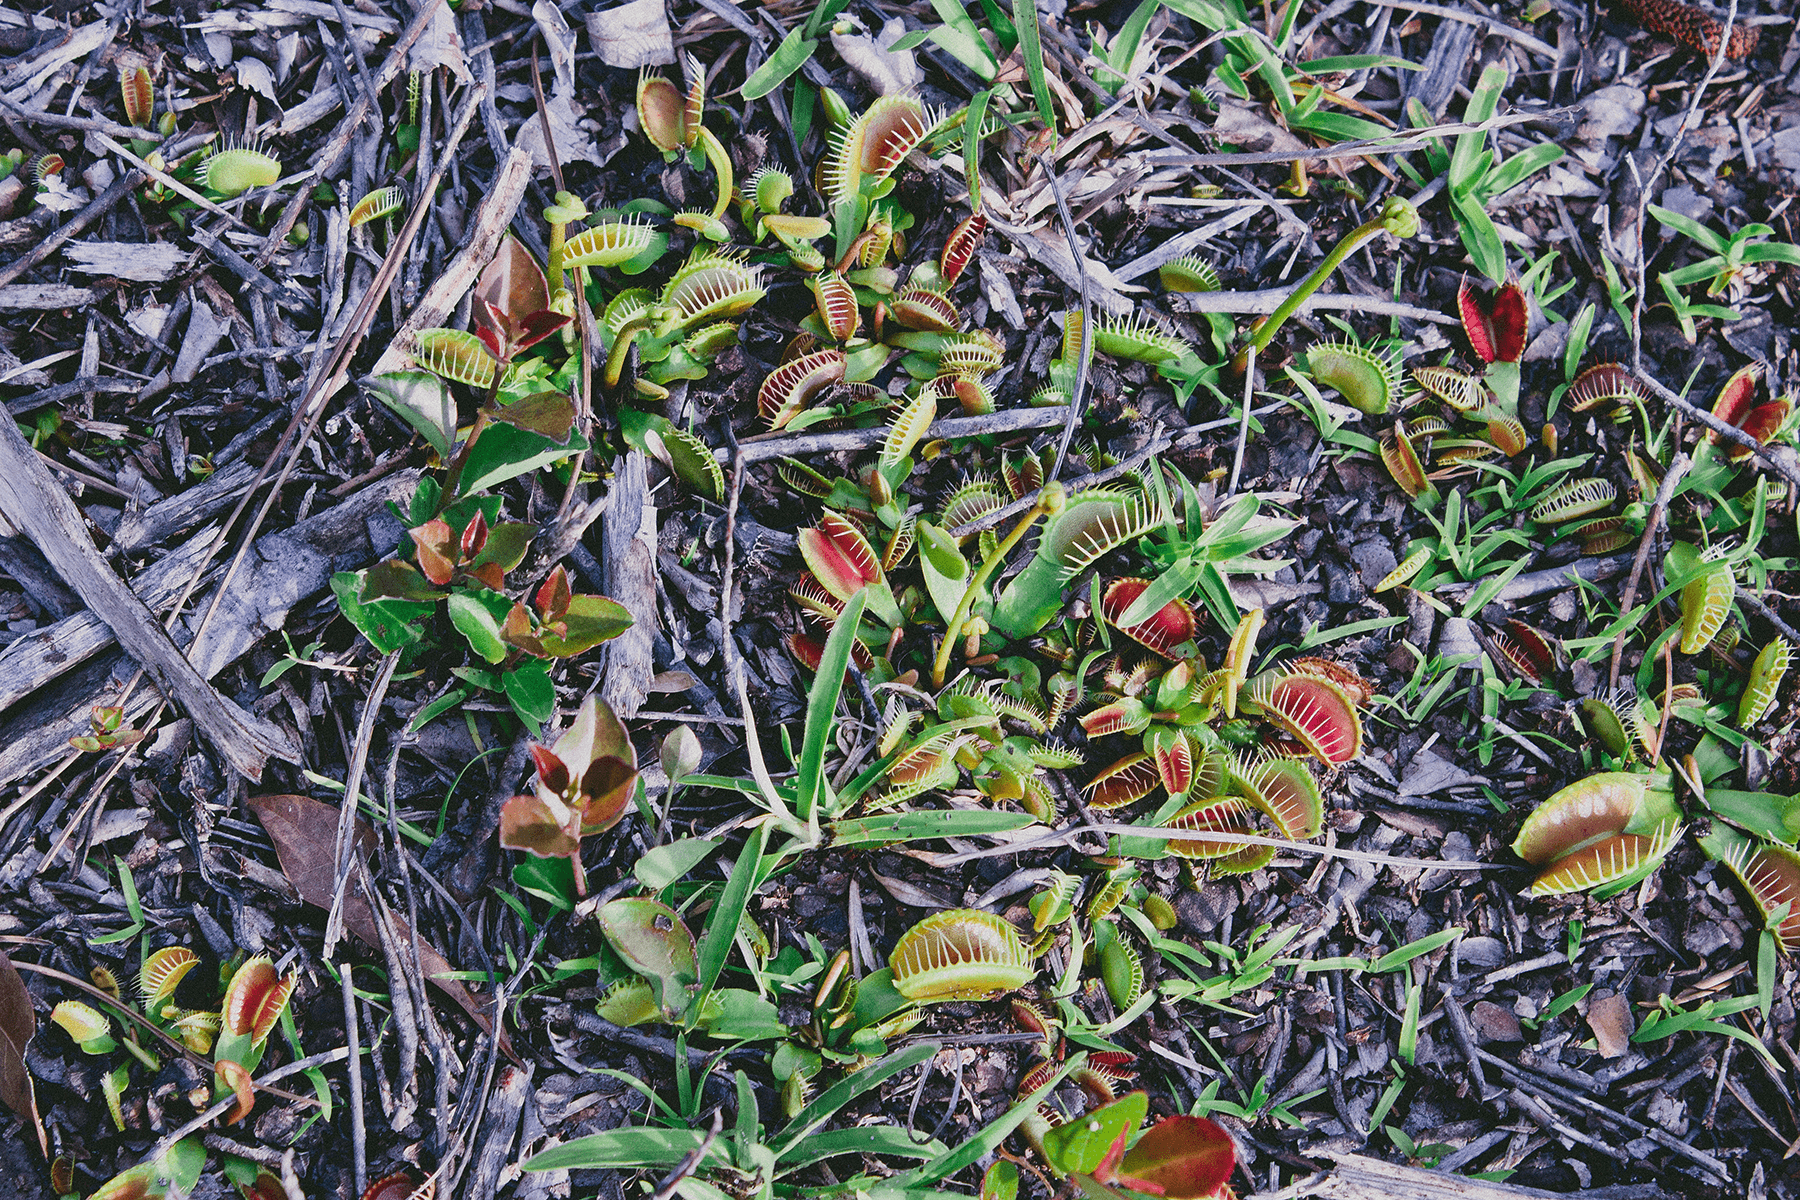 "The pitcher plants seen above  weren't the only carnivorous plant we encountered. The ground was also covered in Sarracenia psittacina and Venus Fly Traps.  Like most people the first carnivorous plant I ever heard of was the Venus flytrap. We've probably all seen the doomed individuals in little plastic terraria for sale in various stores -- most probably don't live very long at home, due to the 'houseplant' myth, these dudes need direct sunLIGHT! Venus flytraps are native to just a few places in the Carolinas but they are found in wet bog like areas through out the Apalachicola region. So yeah they aren't native, but they kinda got their ""green card"" because they adapt so well and haven't invaded our swamps and savannas."